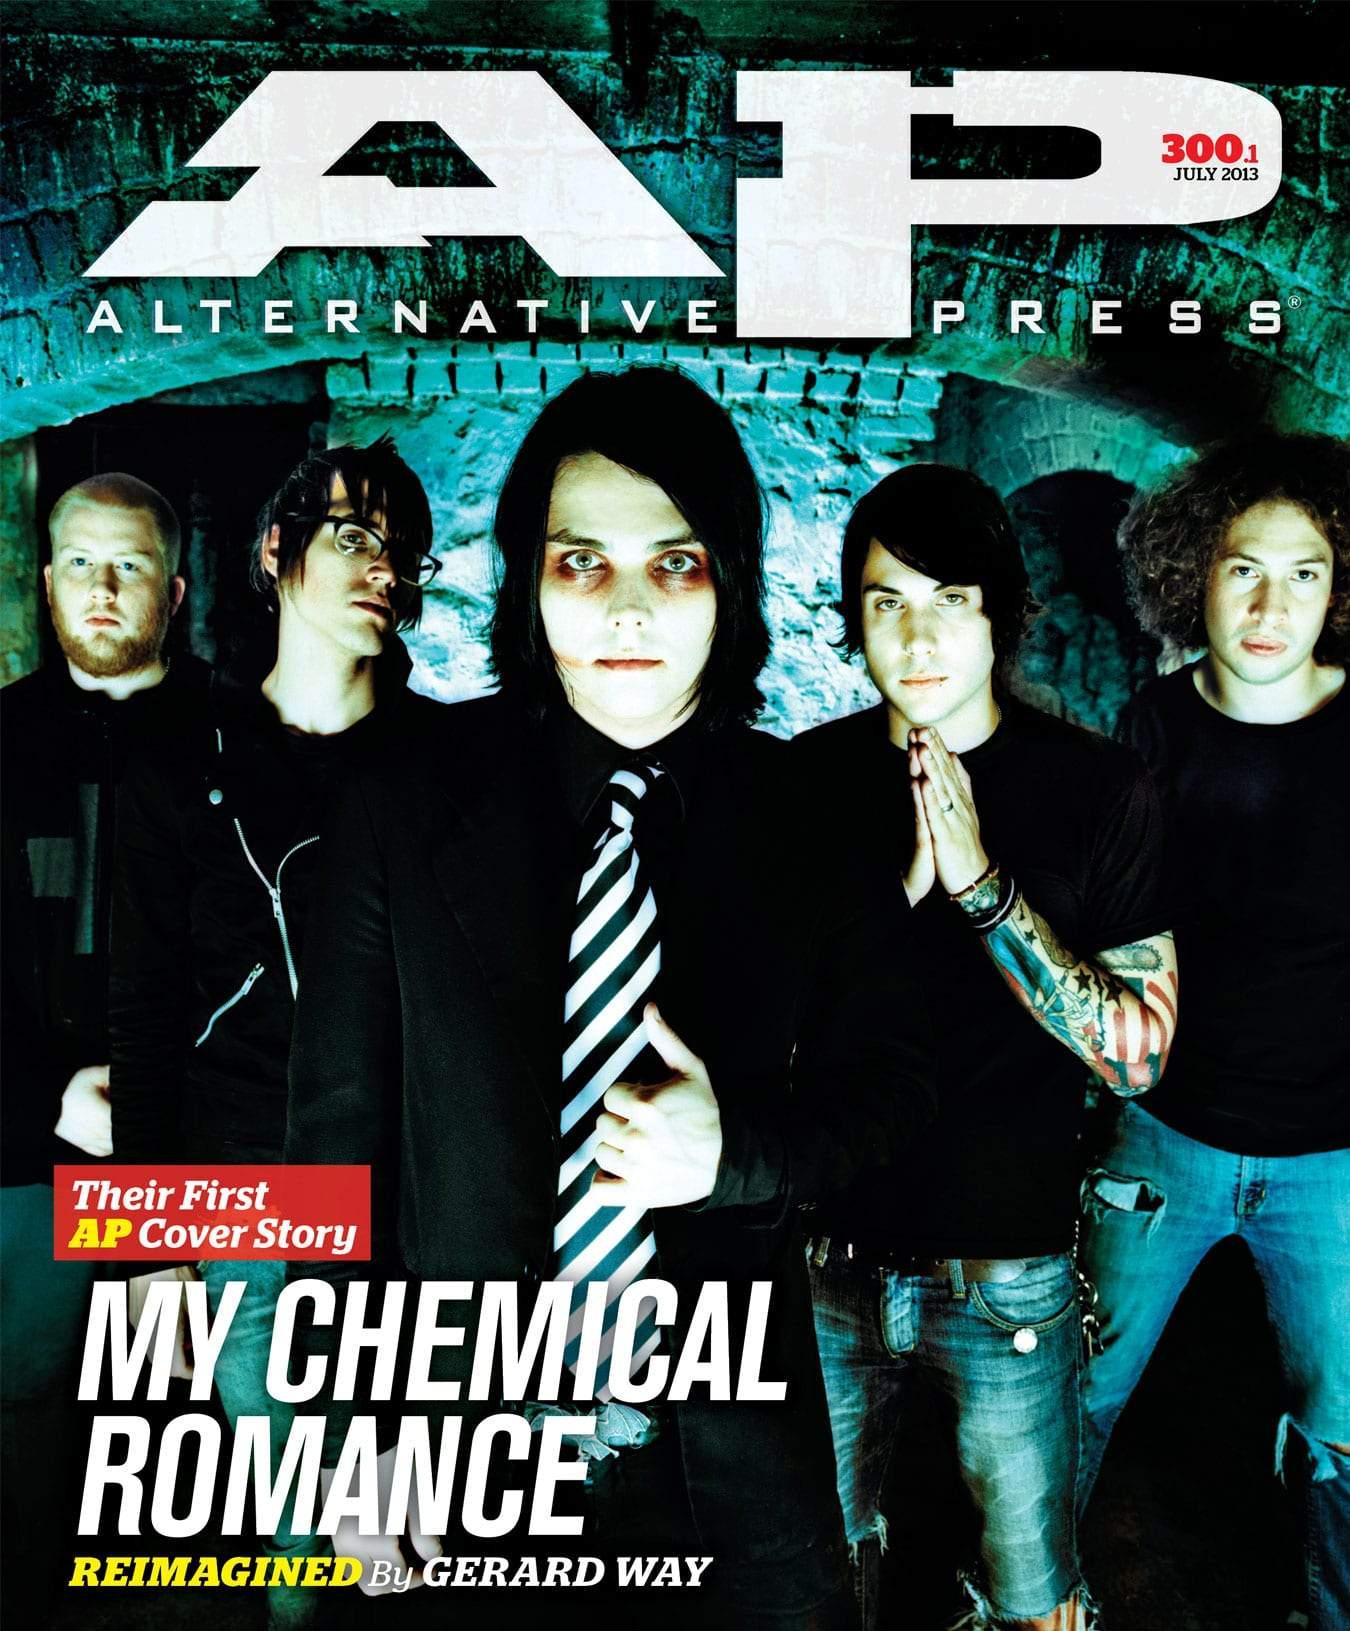 My Chemical Romance - Alternative Press Magazine Issue 300 Version 1